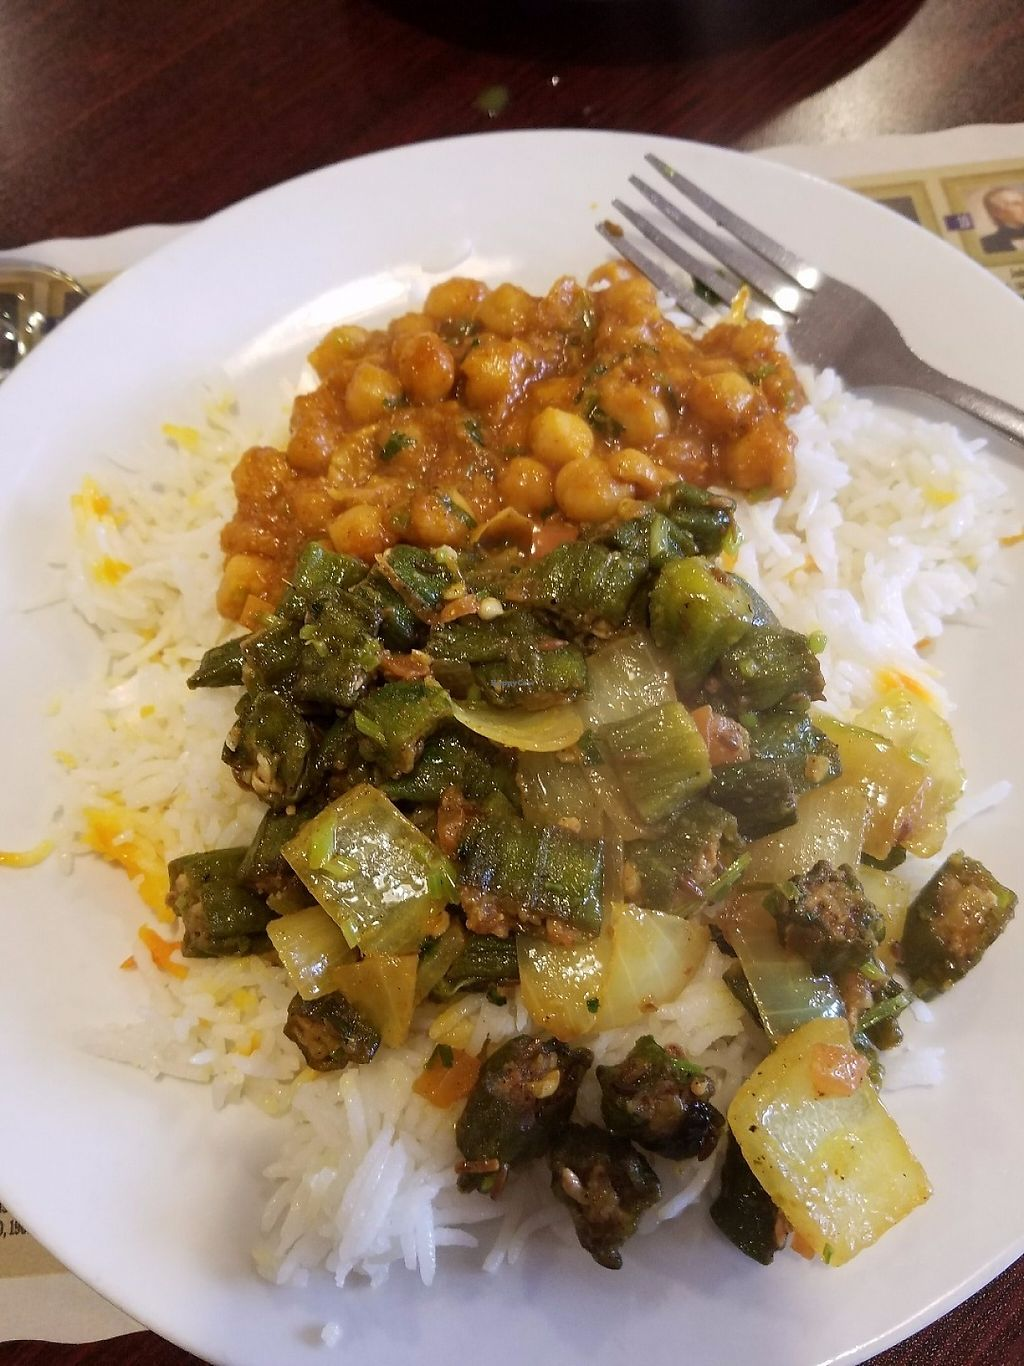 """Photo of Maurya Kebabs & Curries  by <a href=""""/members/profile/MerryRose"""">MerryRose</a> <br/>all dished out (okra, onion, tomato as well as channa masala) <br/> June 2, 2017  - <a href='/contact/abuse/image/93081/265144'>Report</a>"""